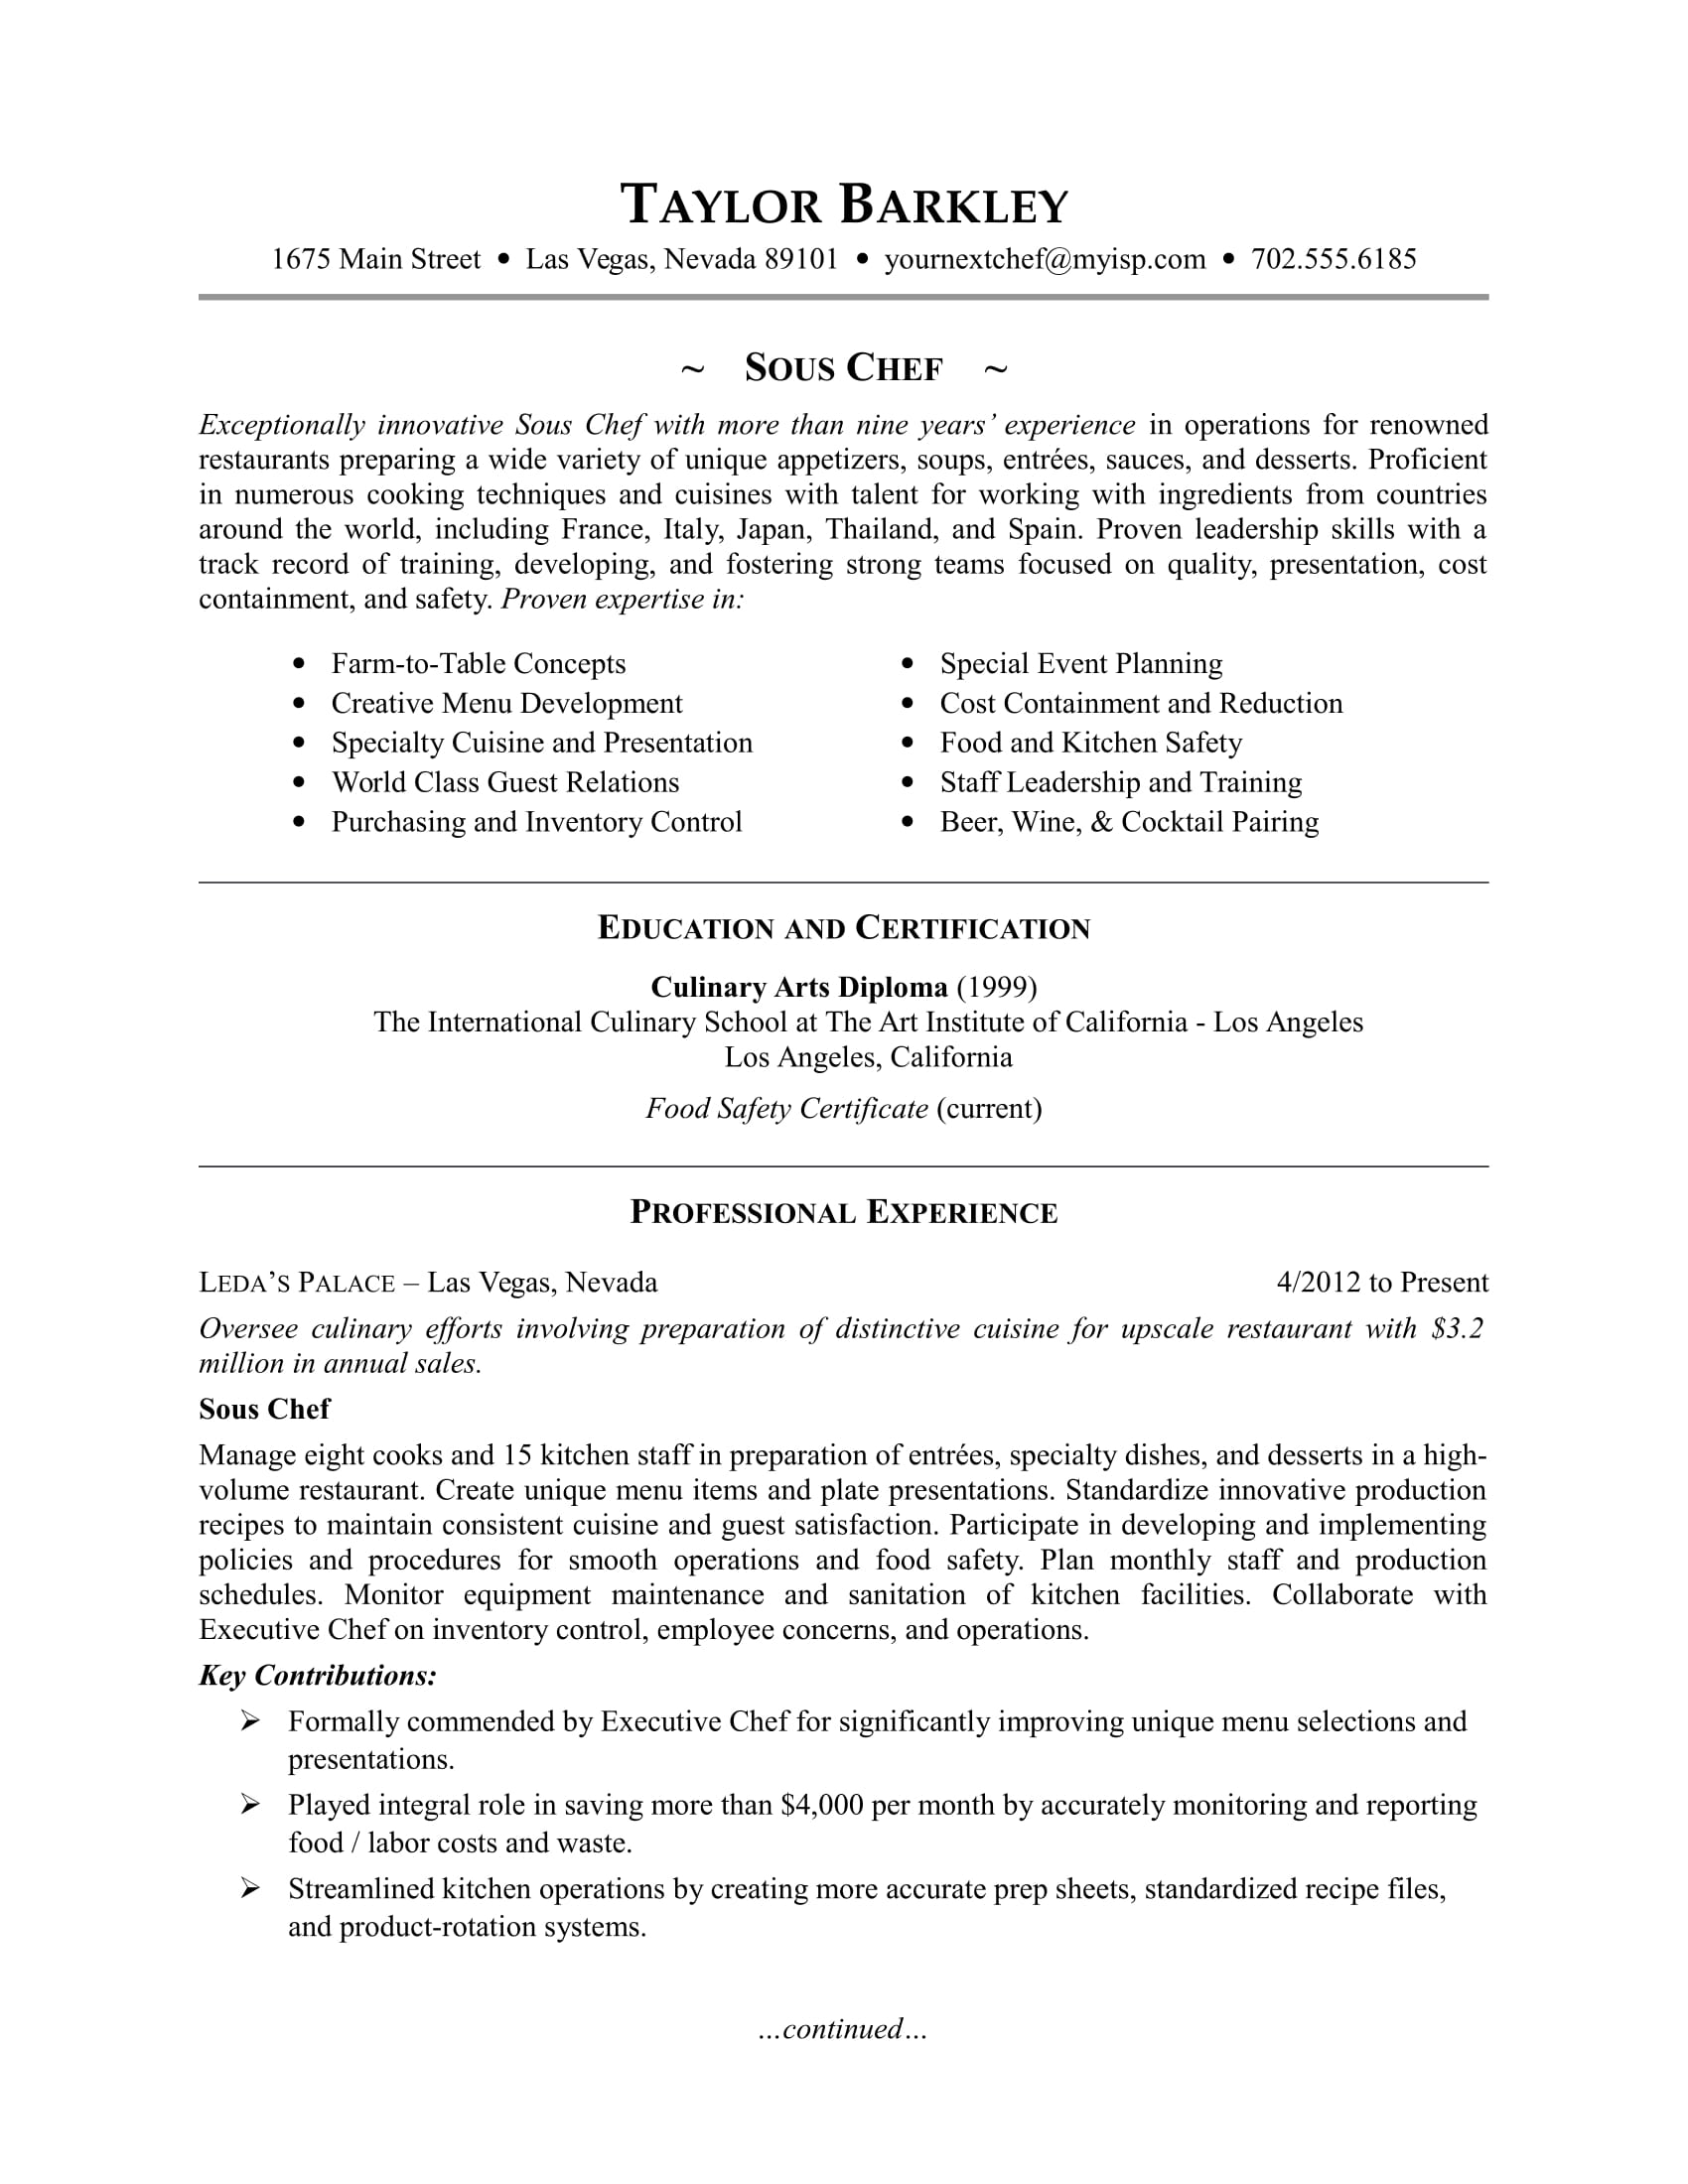 Sous chef resume sample monster sample resume for a sous chef yelopaper Image collections